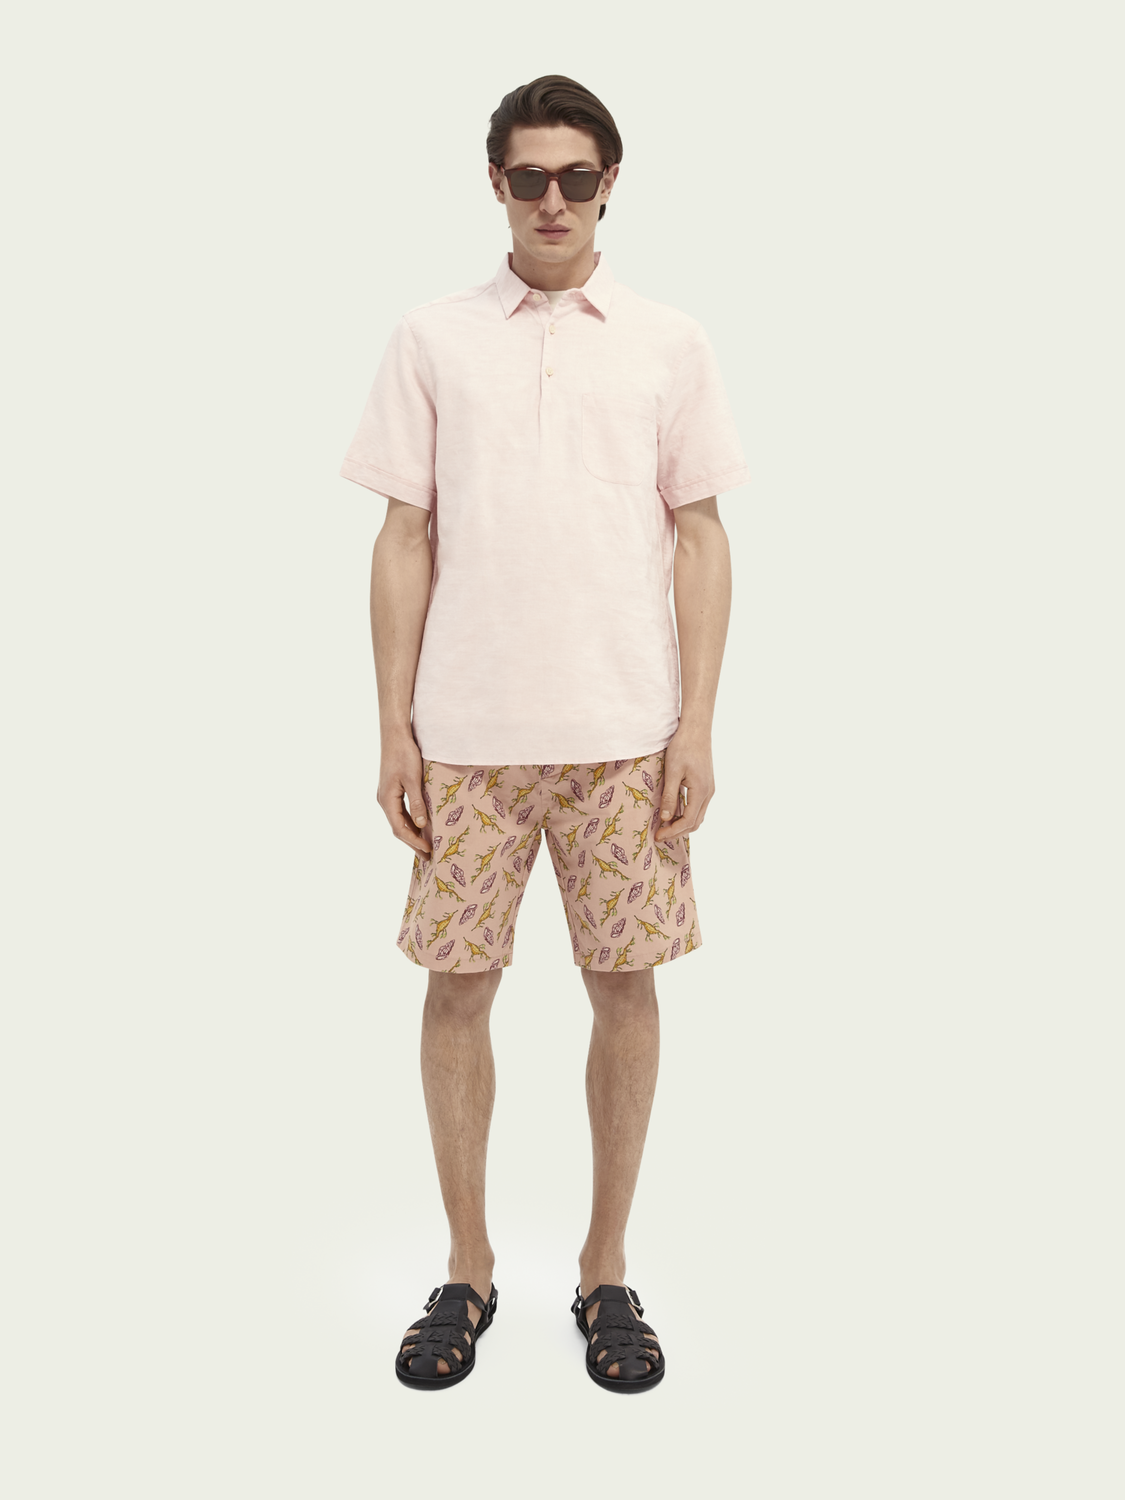 Printed pink mens shorts from Scotch and Soda